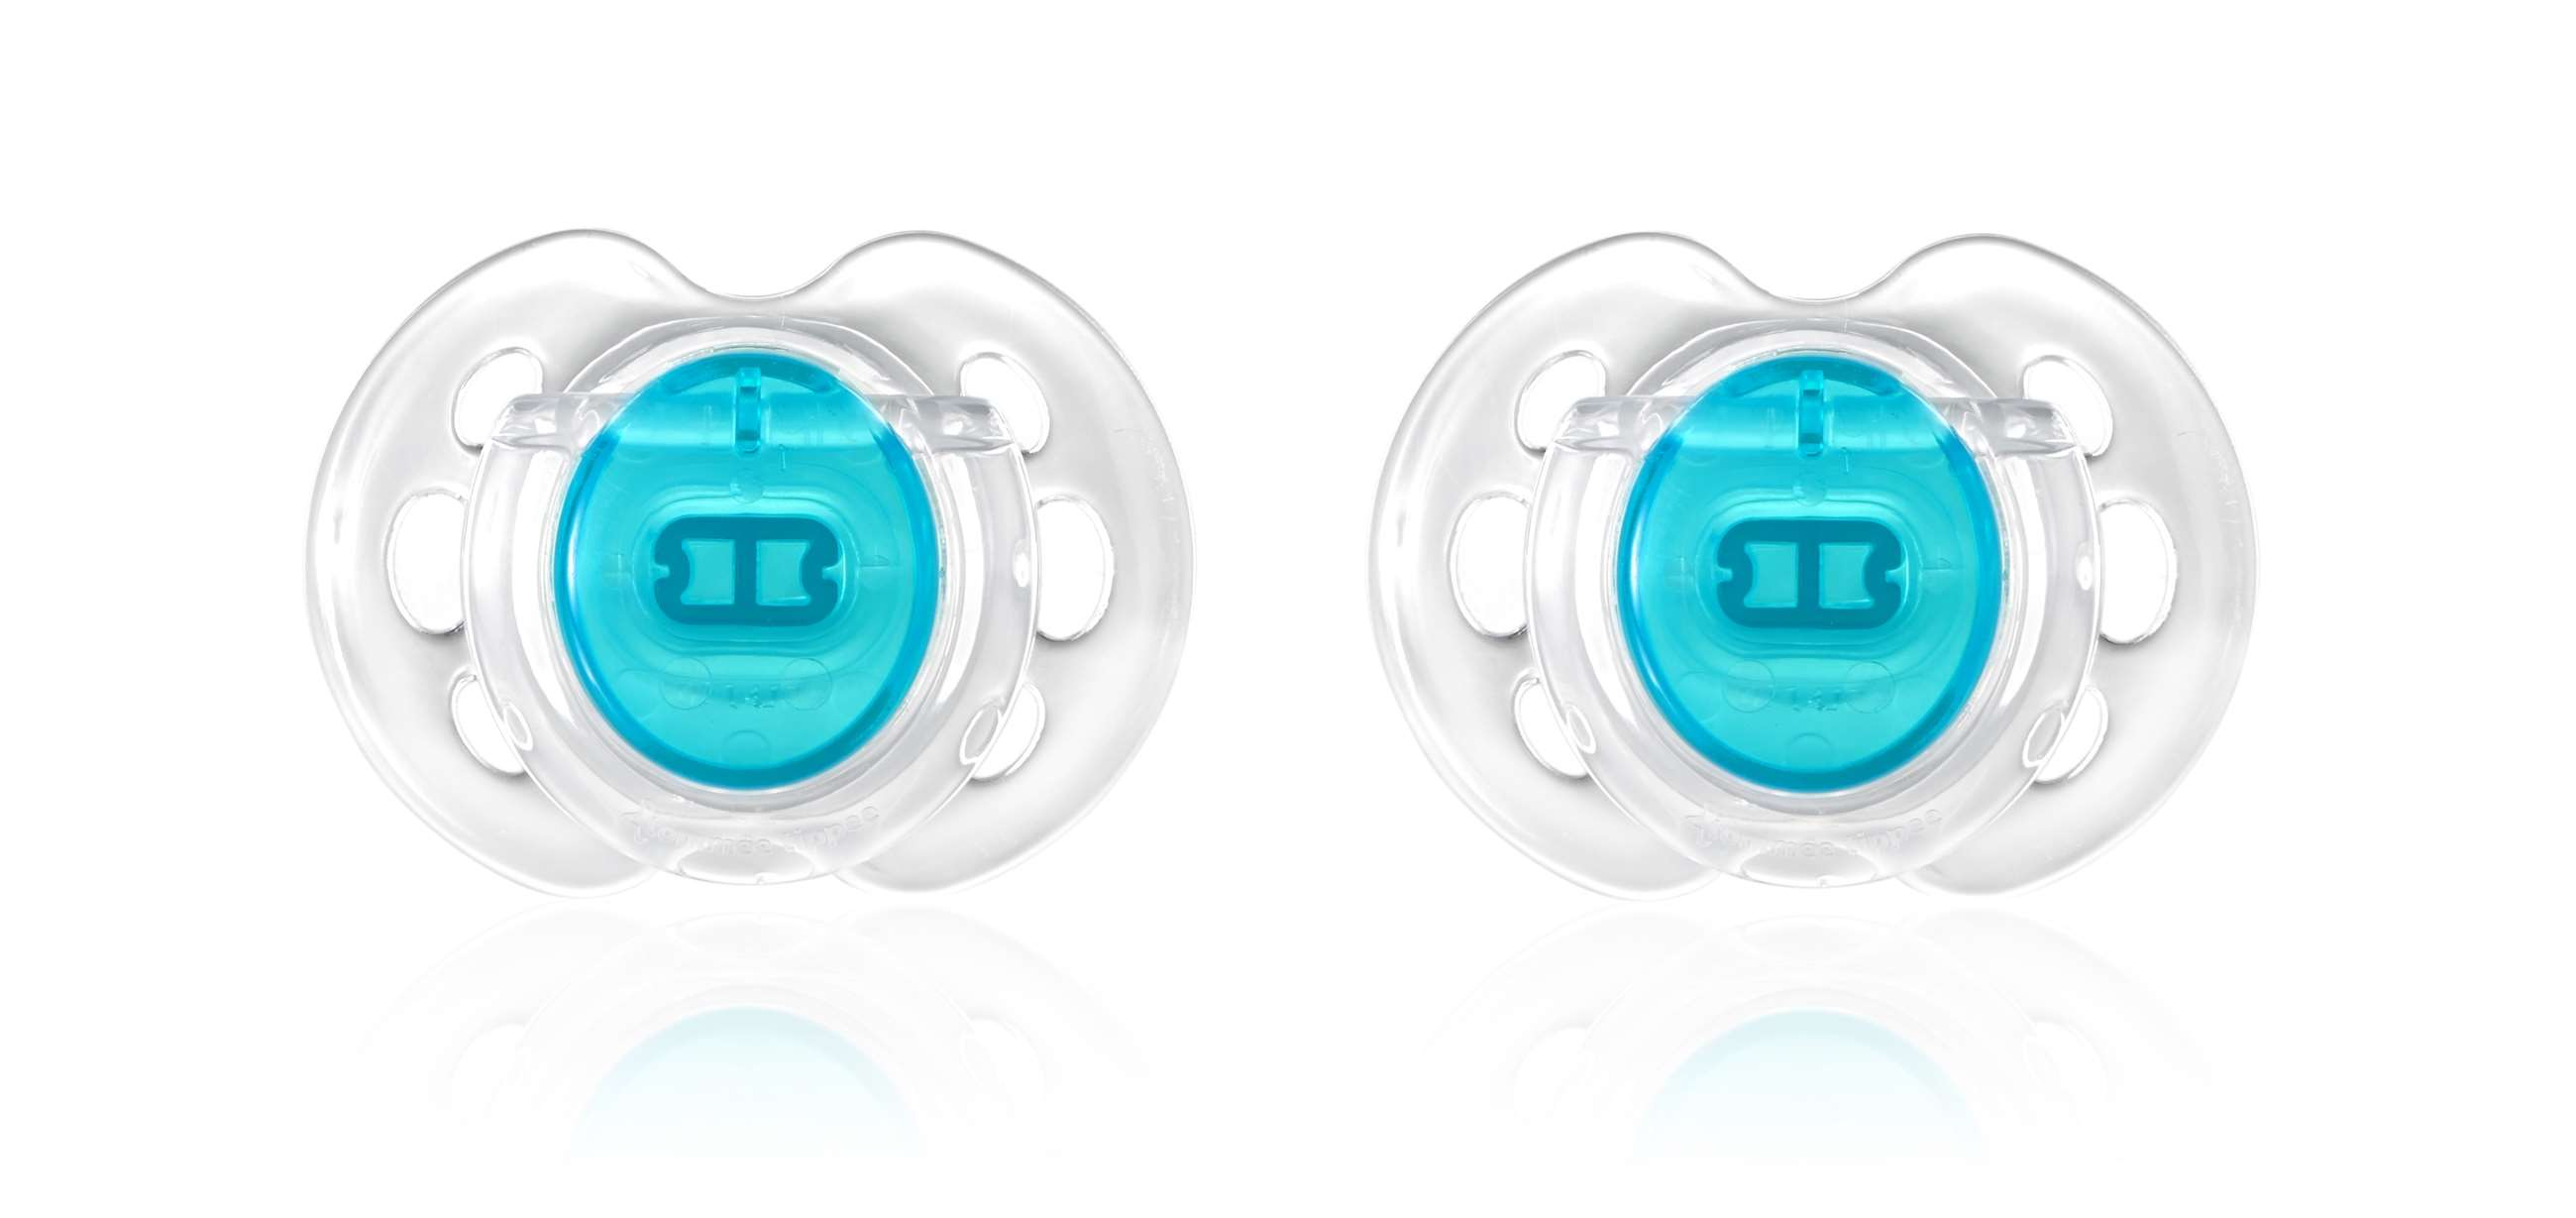 7070 - tt ctn 2x 0-6m air style soother - blue